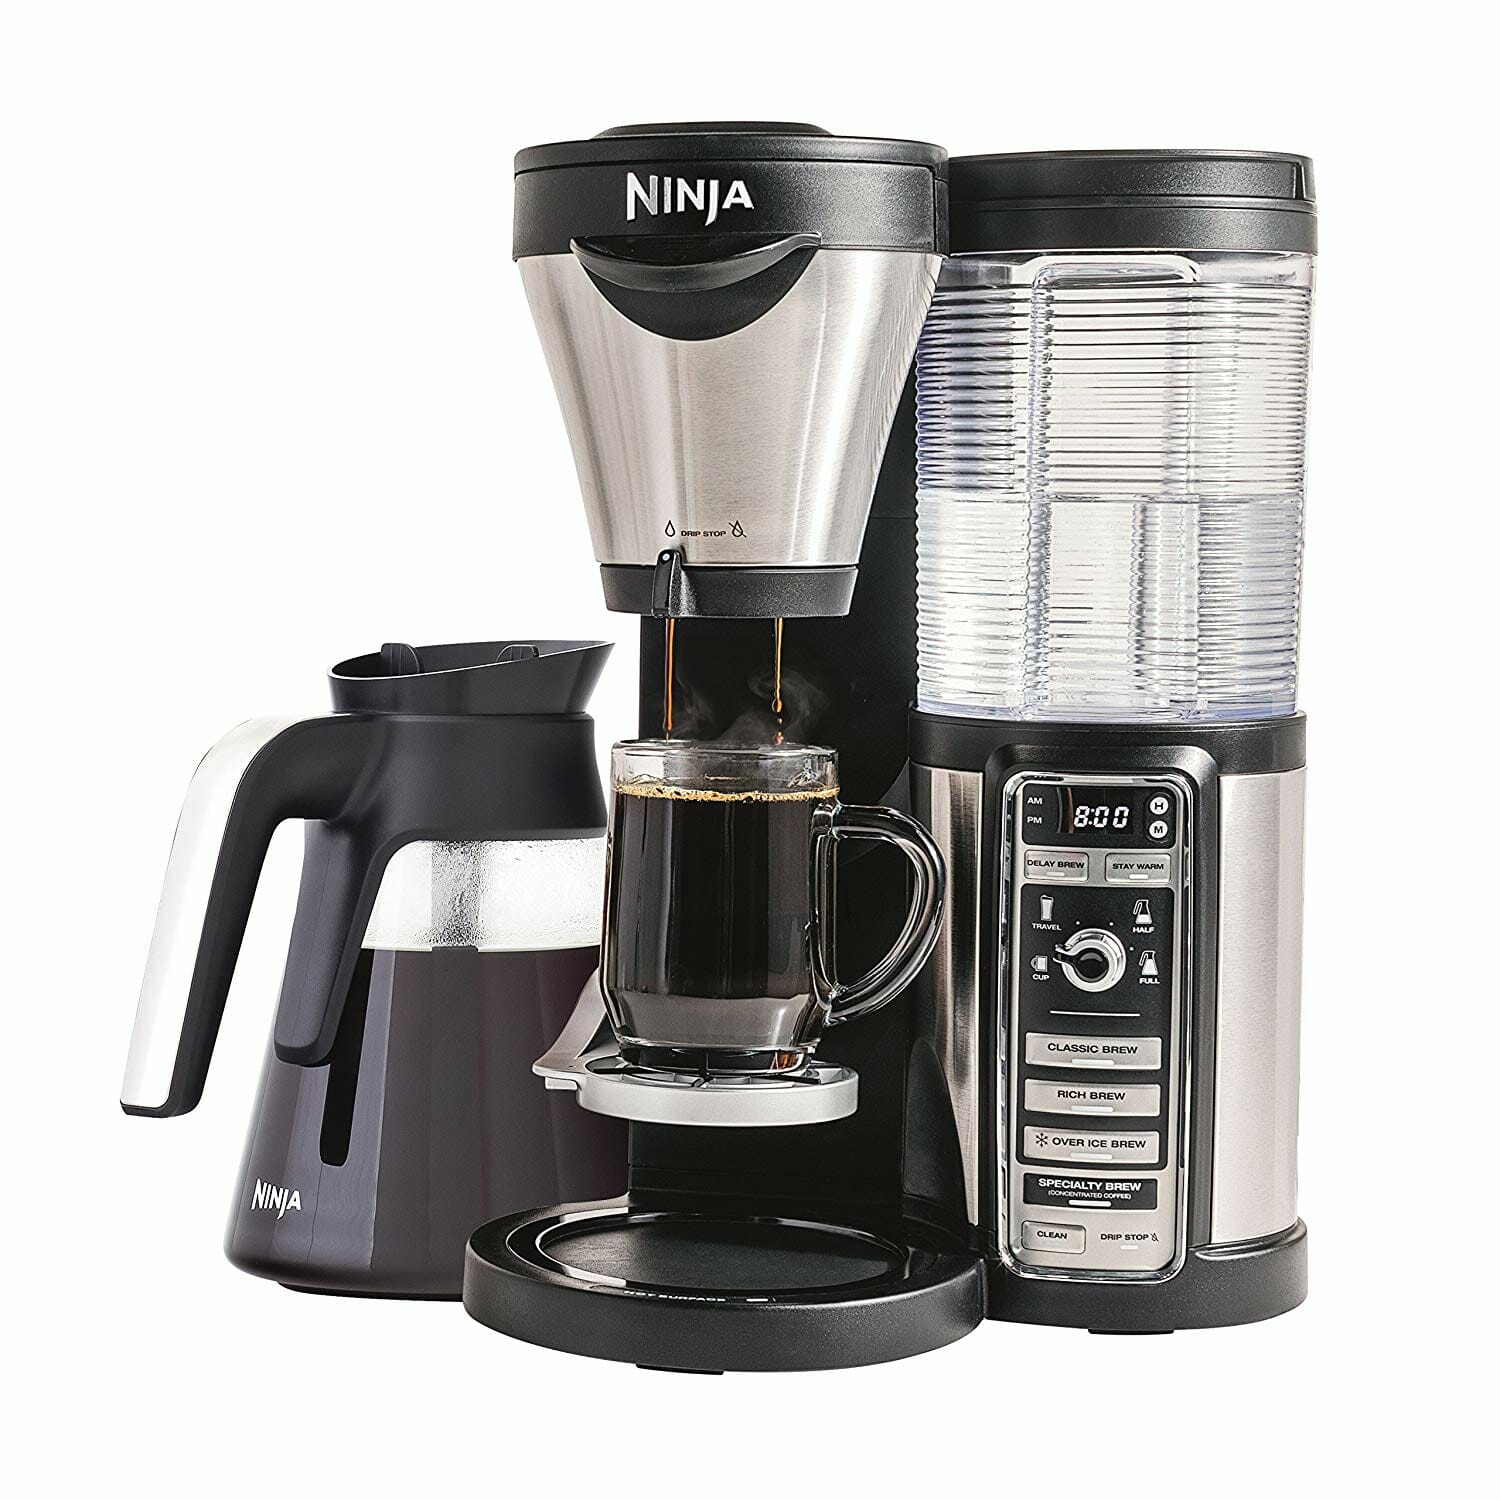 ninja CF080Z with 5 cup glass carafe